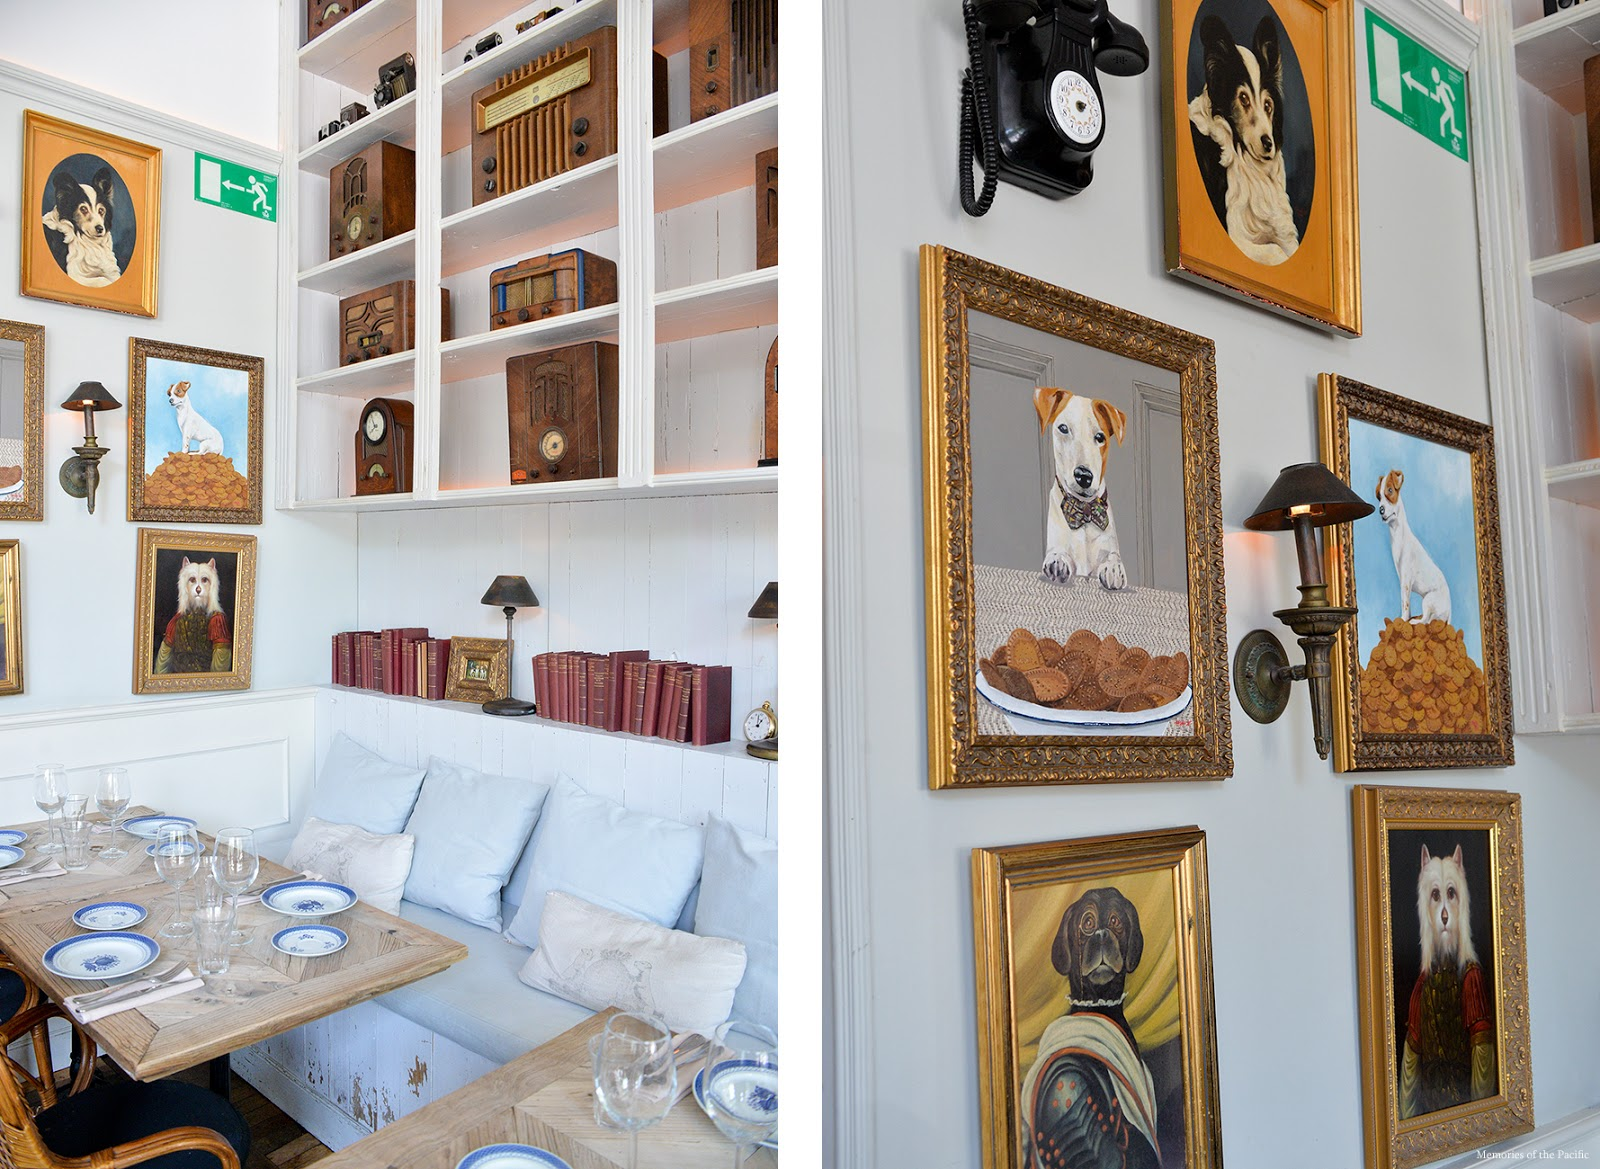 el perro y la galleta restaurant madrid spain travel blogger